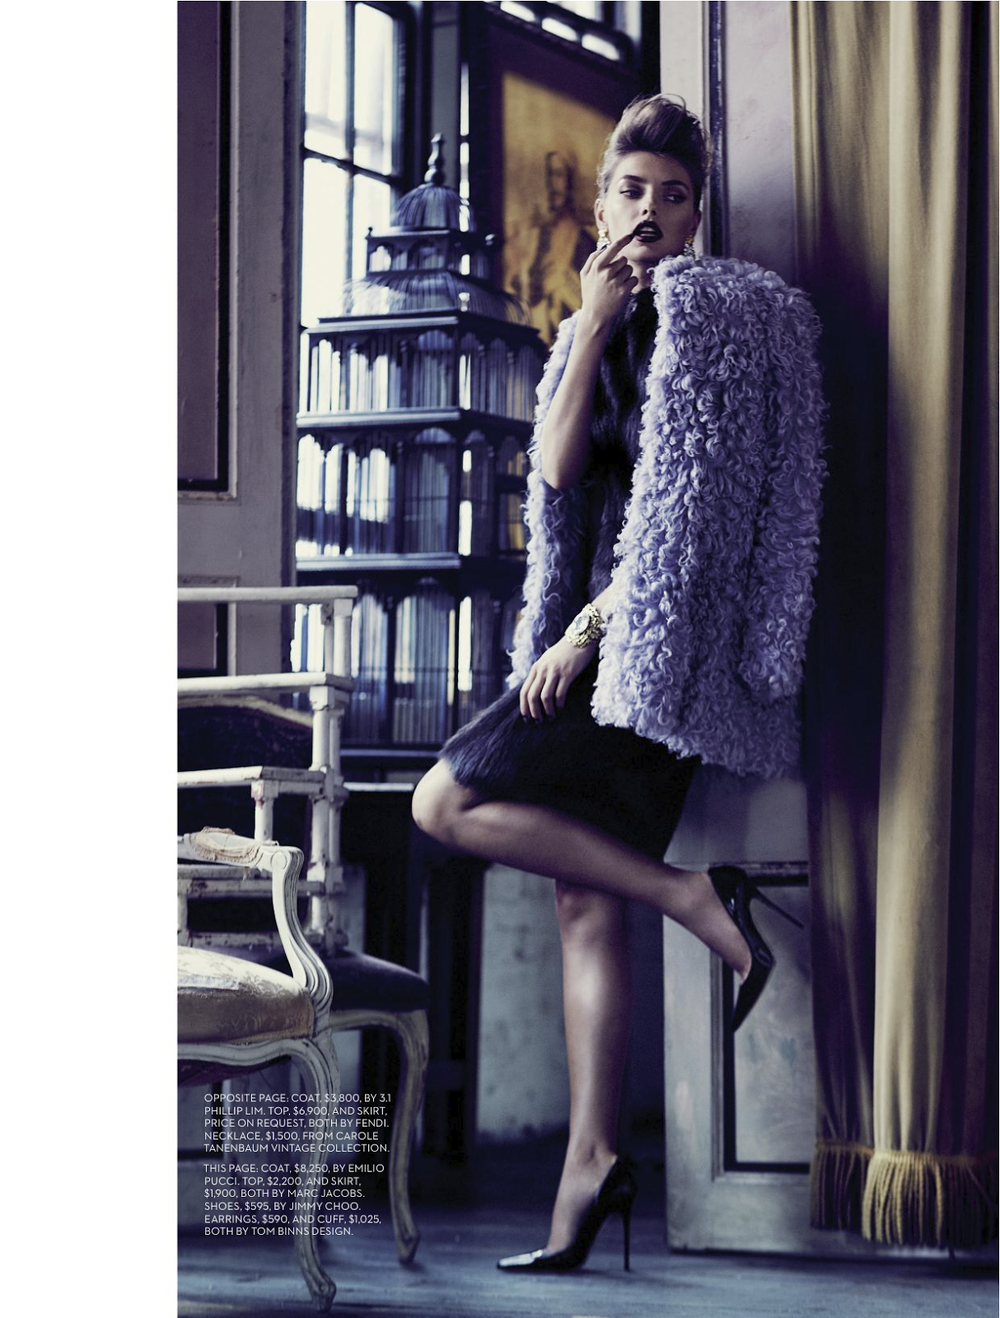 Passing Time: Alina Baikova By Chris Nicholls For Fashion Canada. Coat by Emilio Pucci